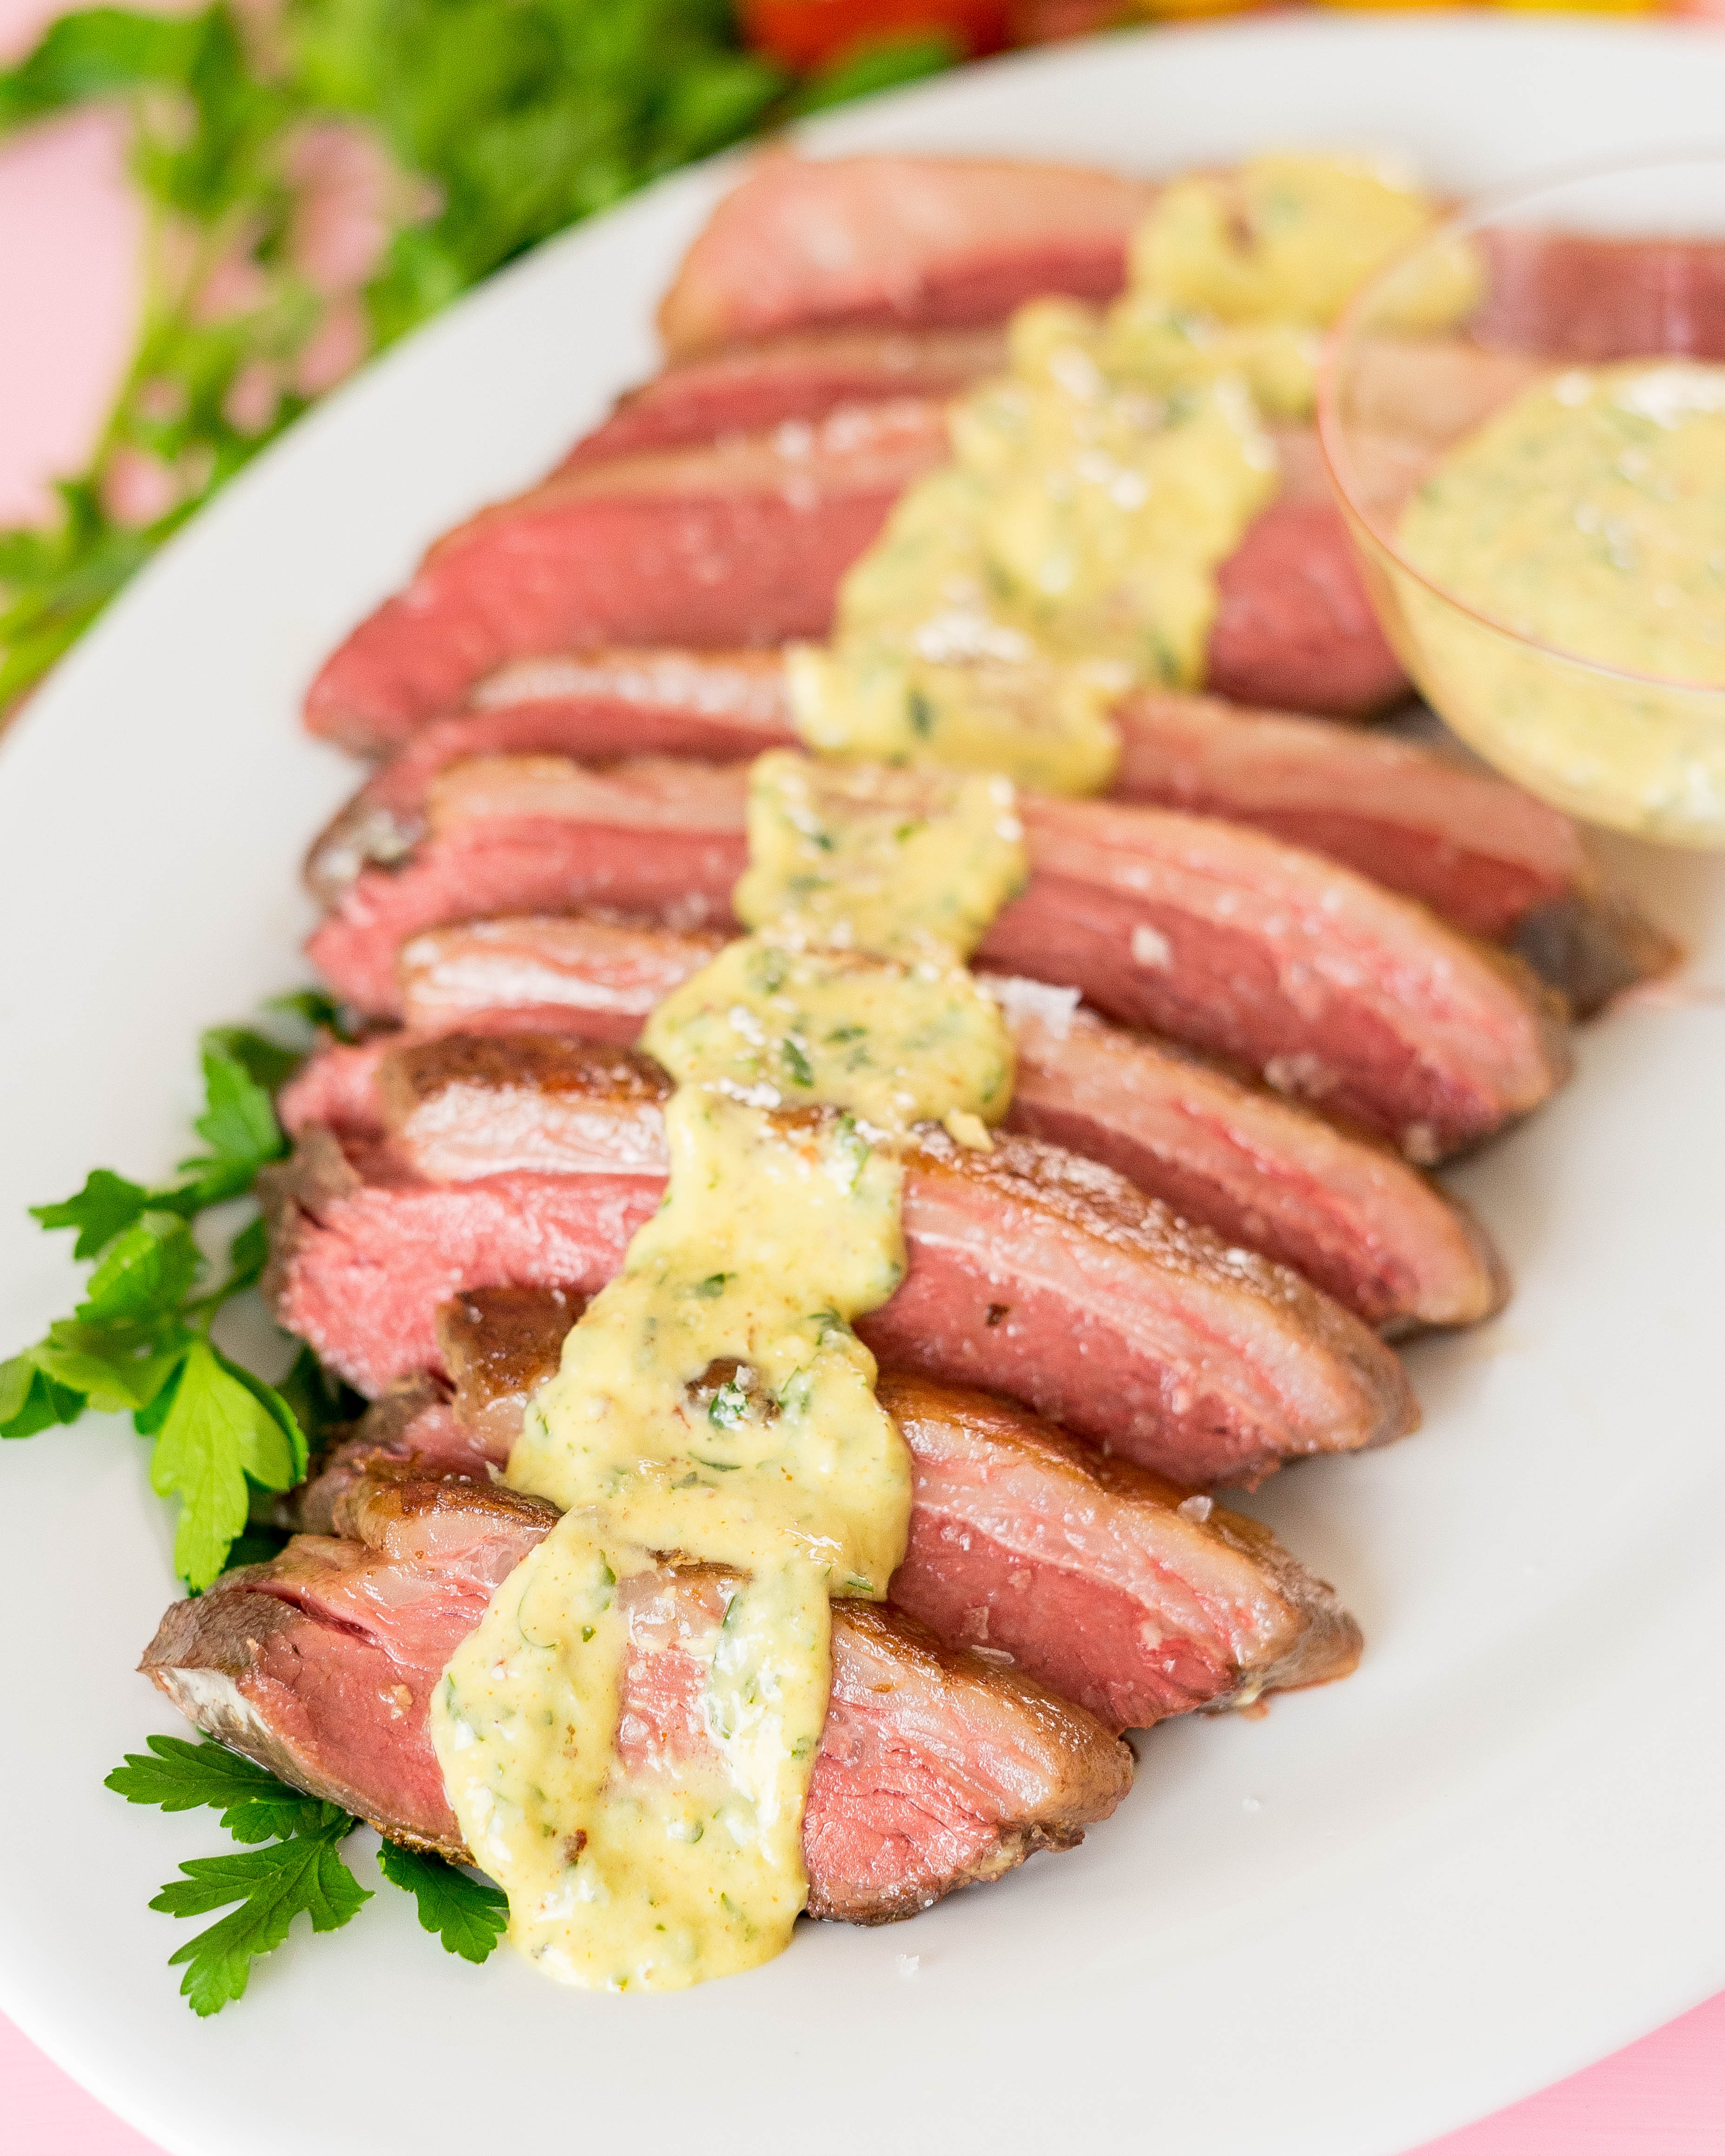 Sous Vide Picanha with Horseradish Dijon Sauce - A Duck's Oven